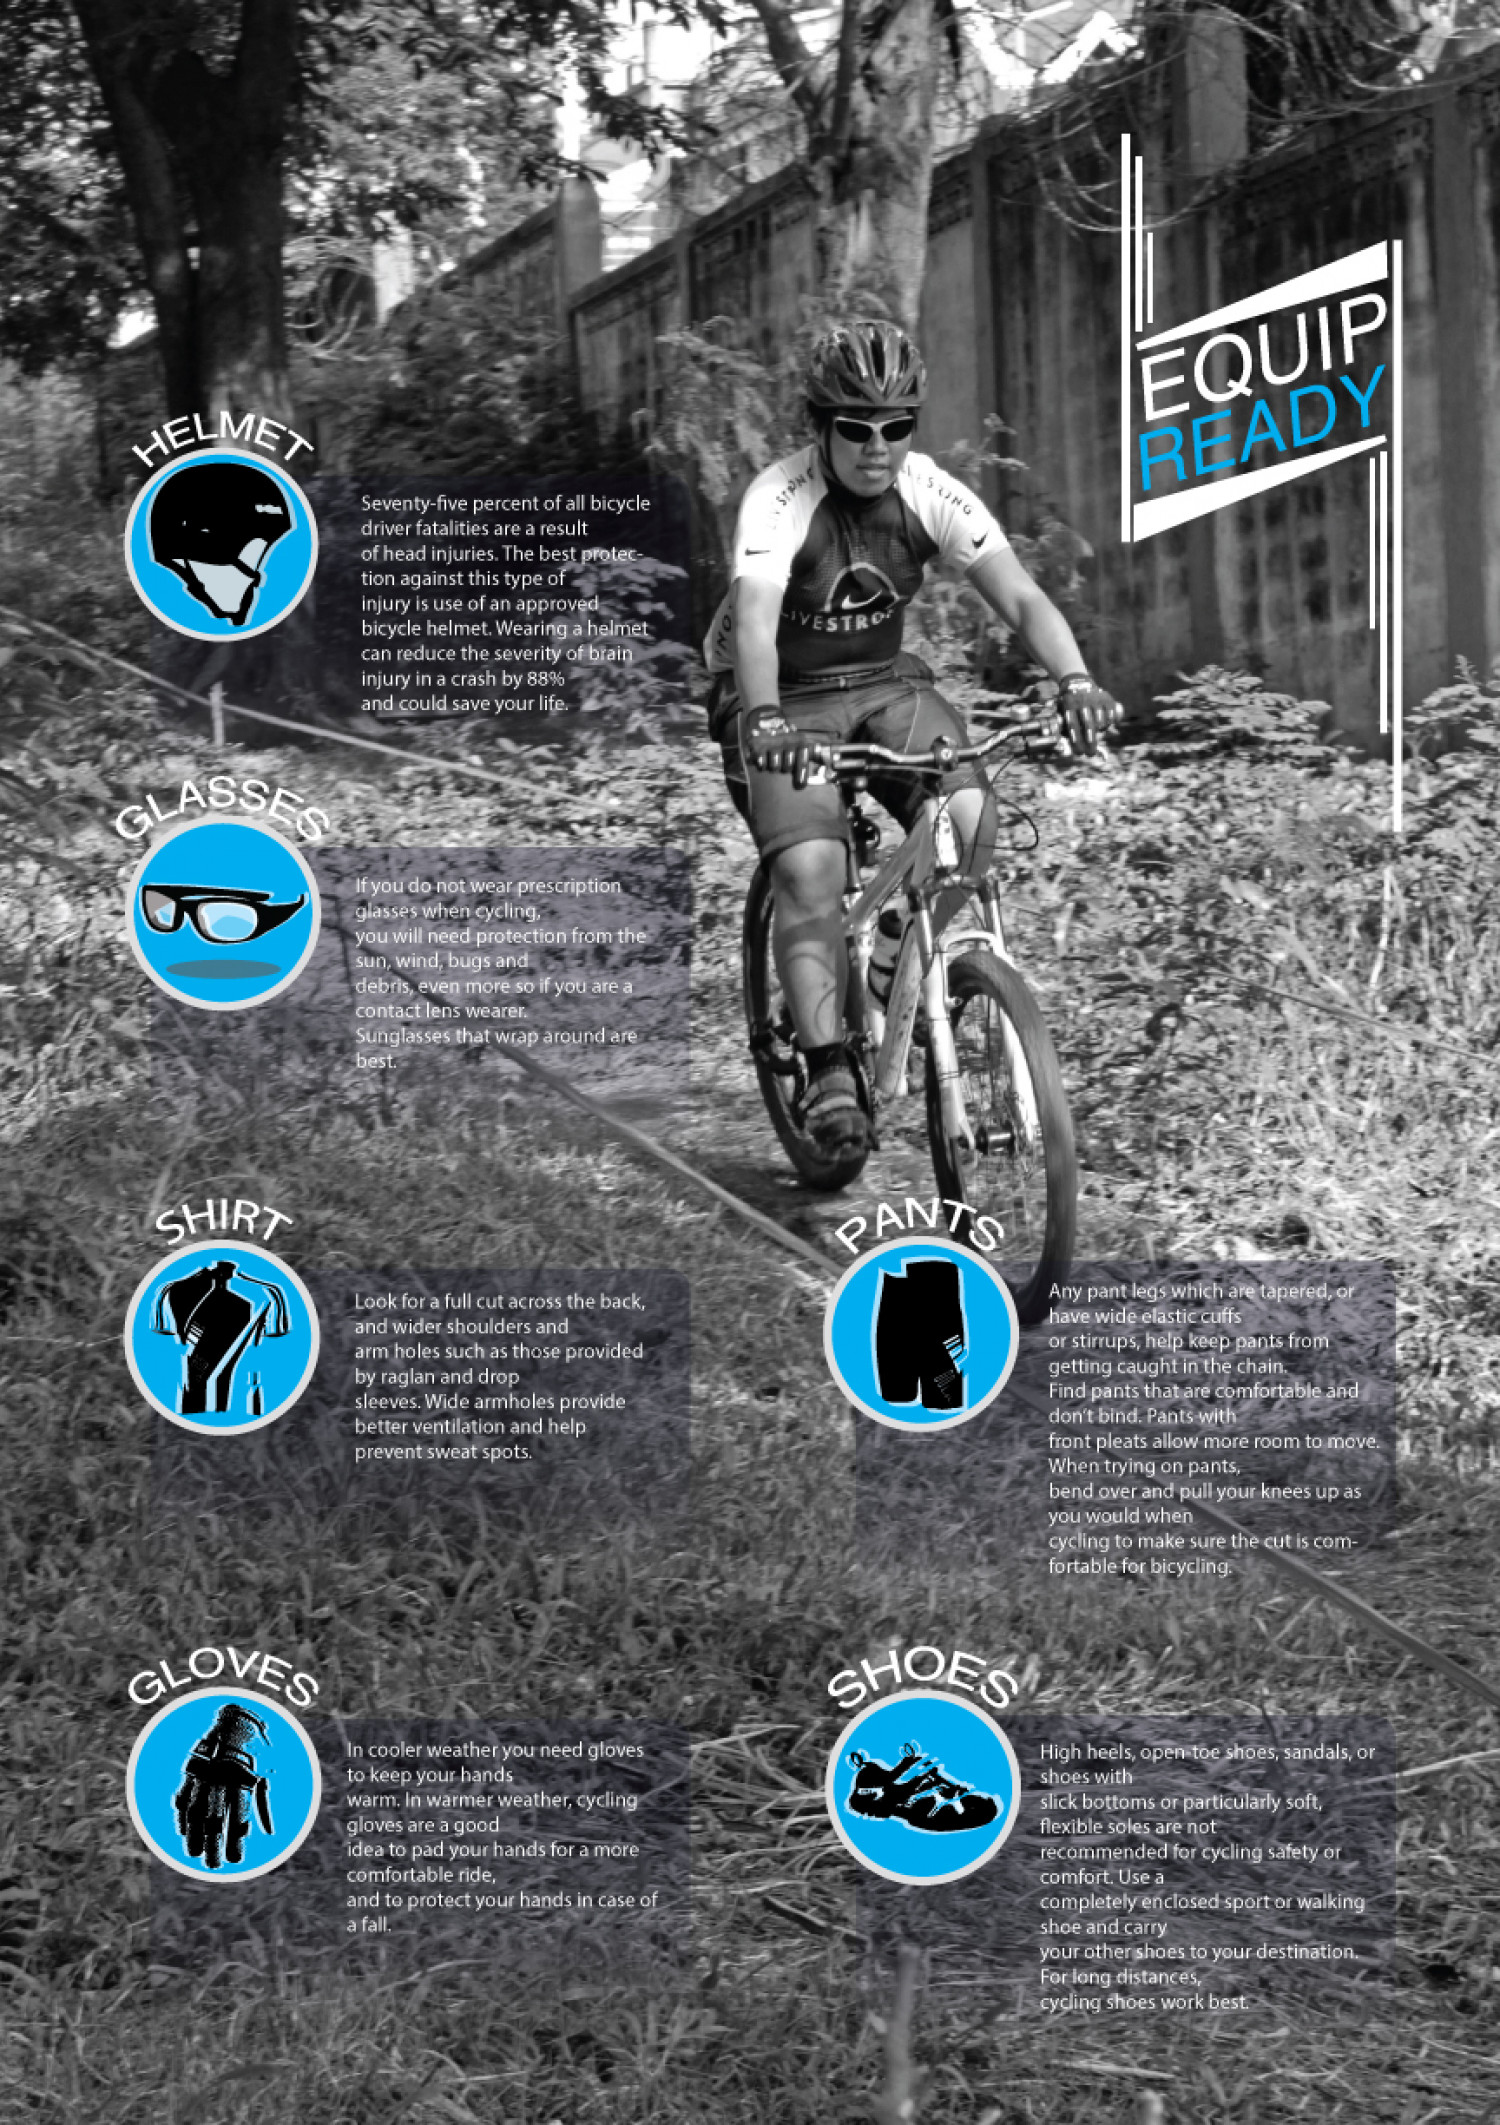 Equip Ready Infographic